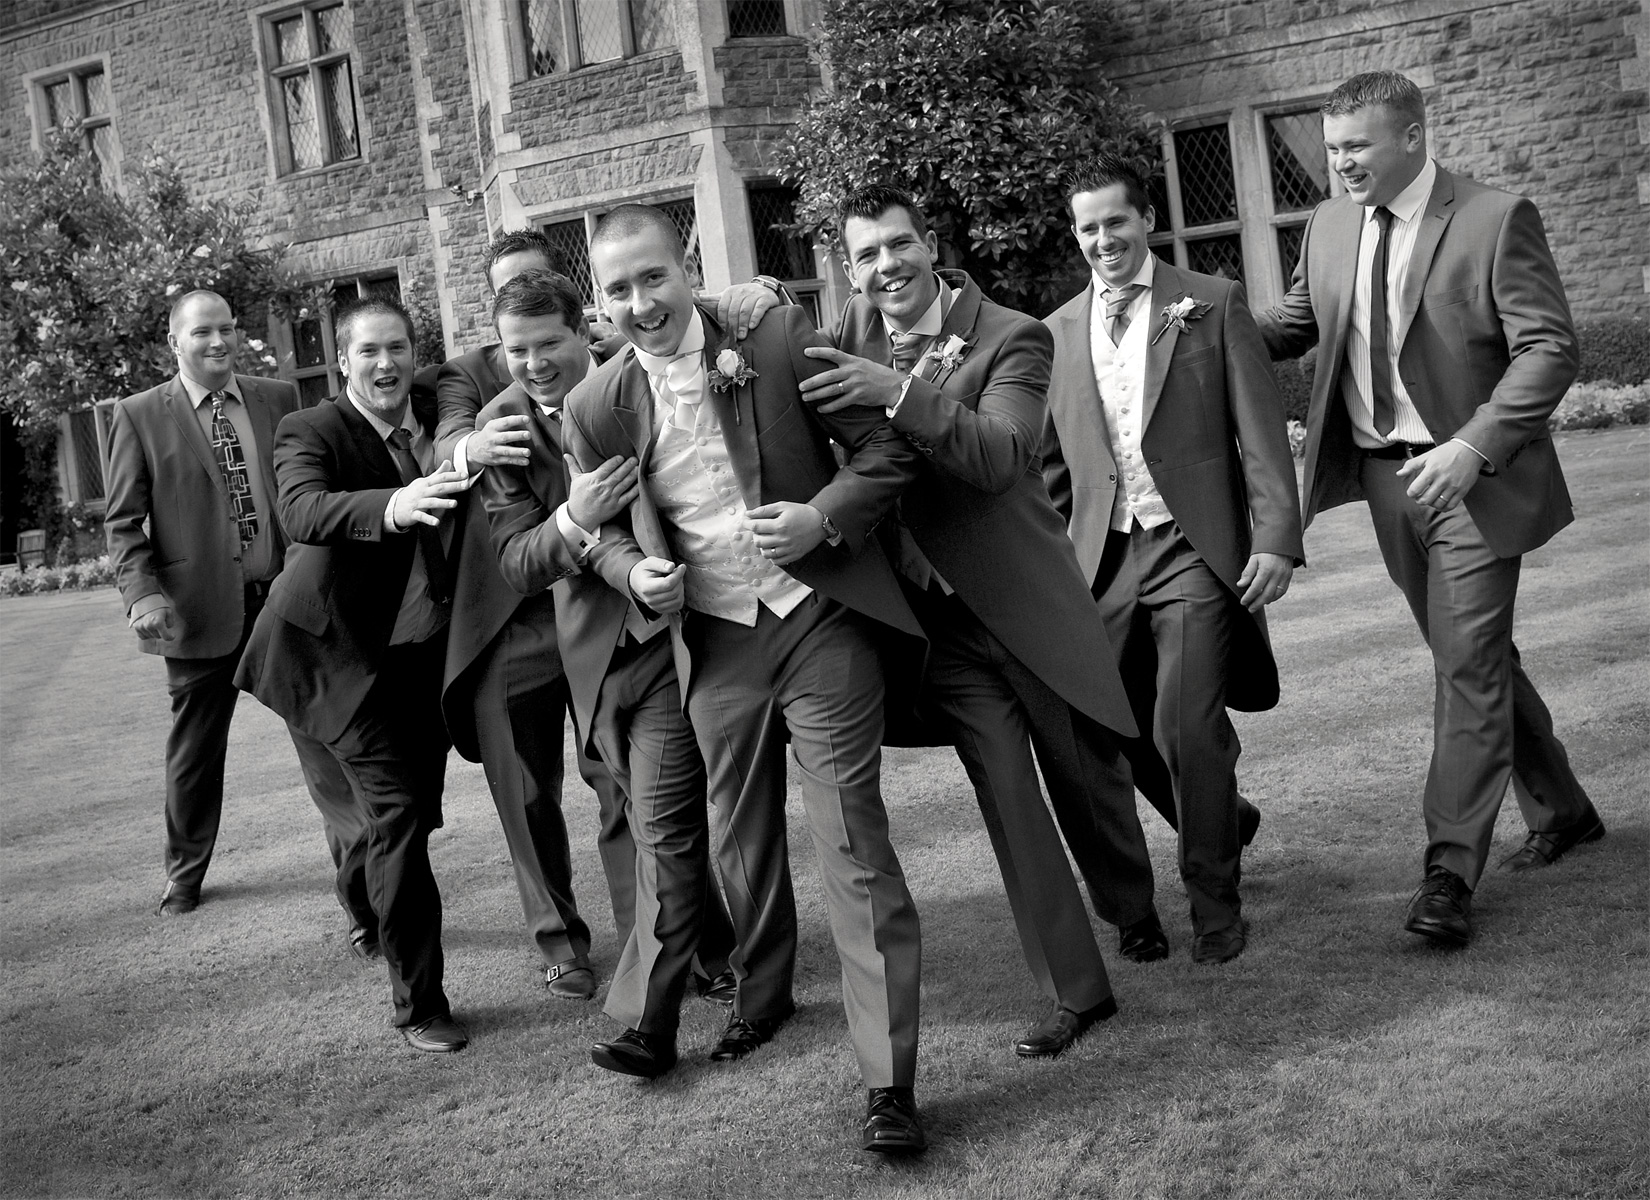 Miskin-Manor-wedding-photography,groom-and-ushers-black-and-white-wedding-photography